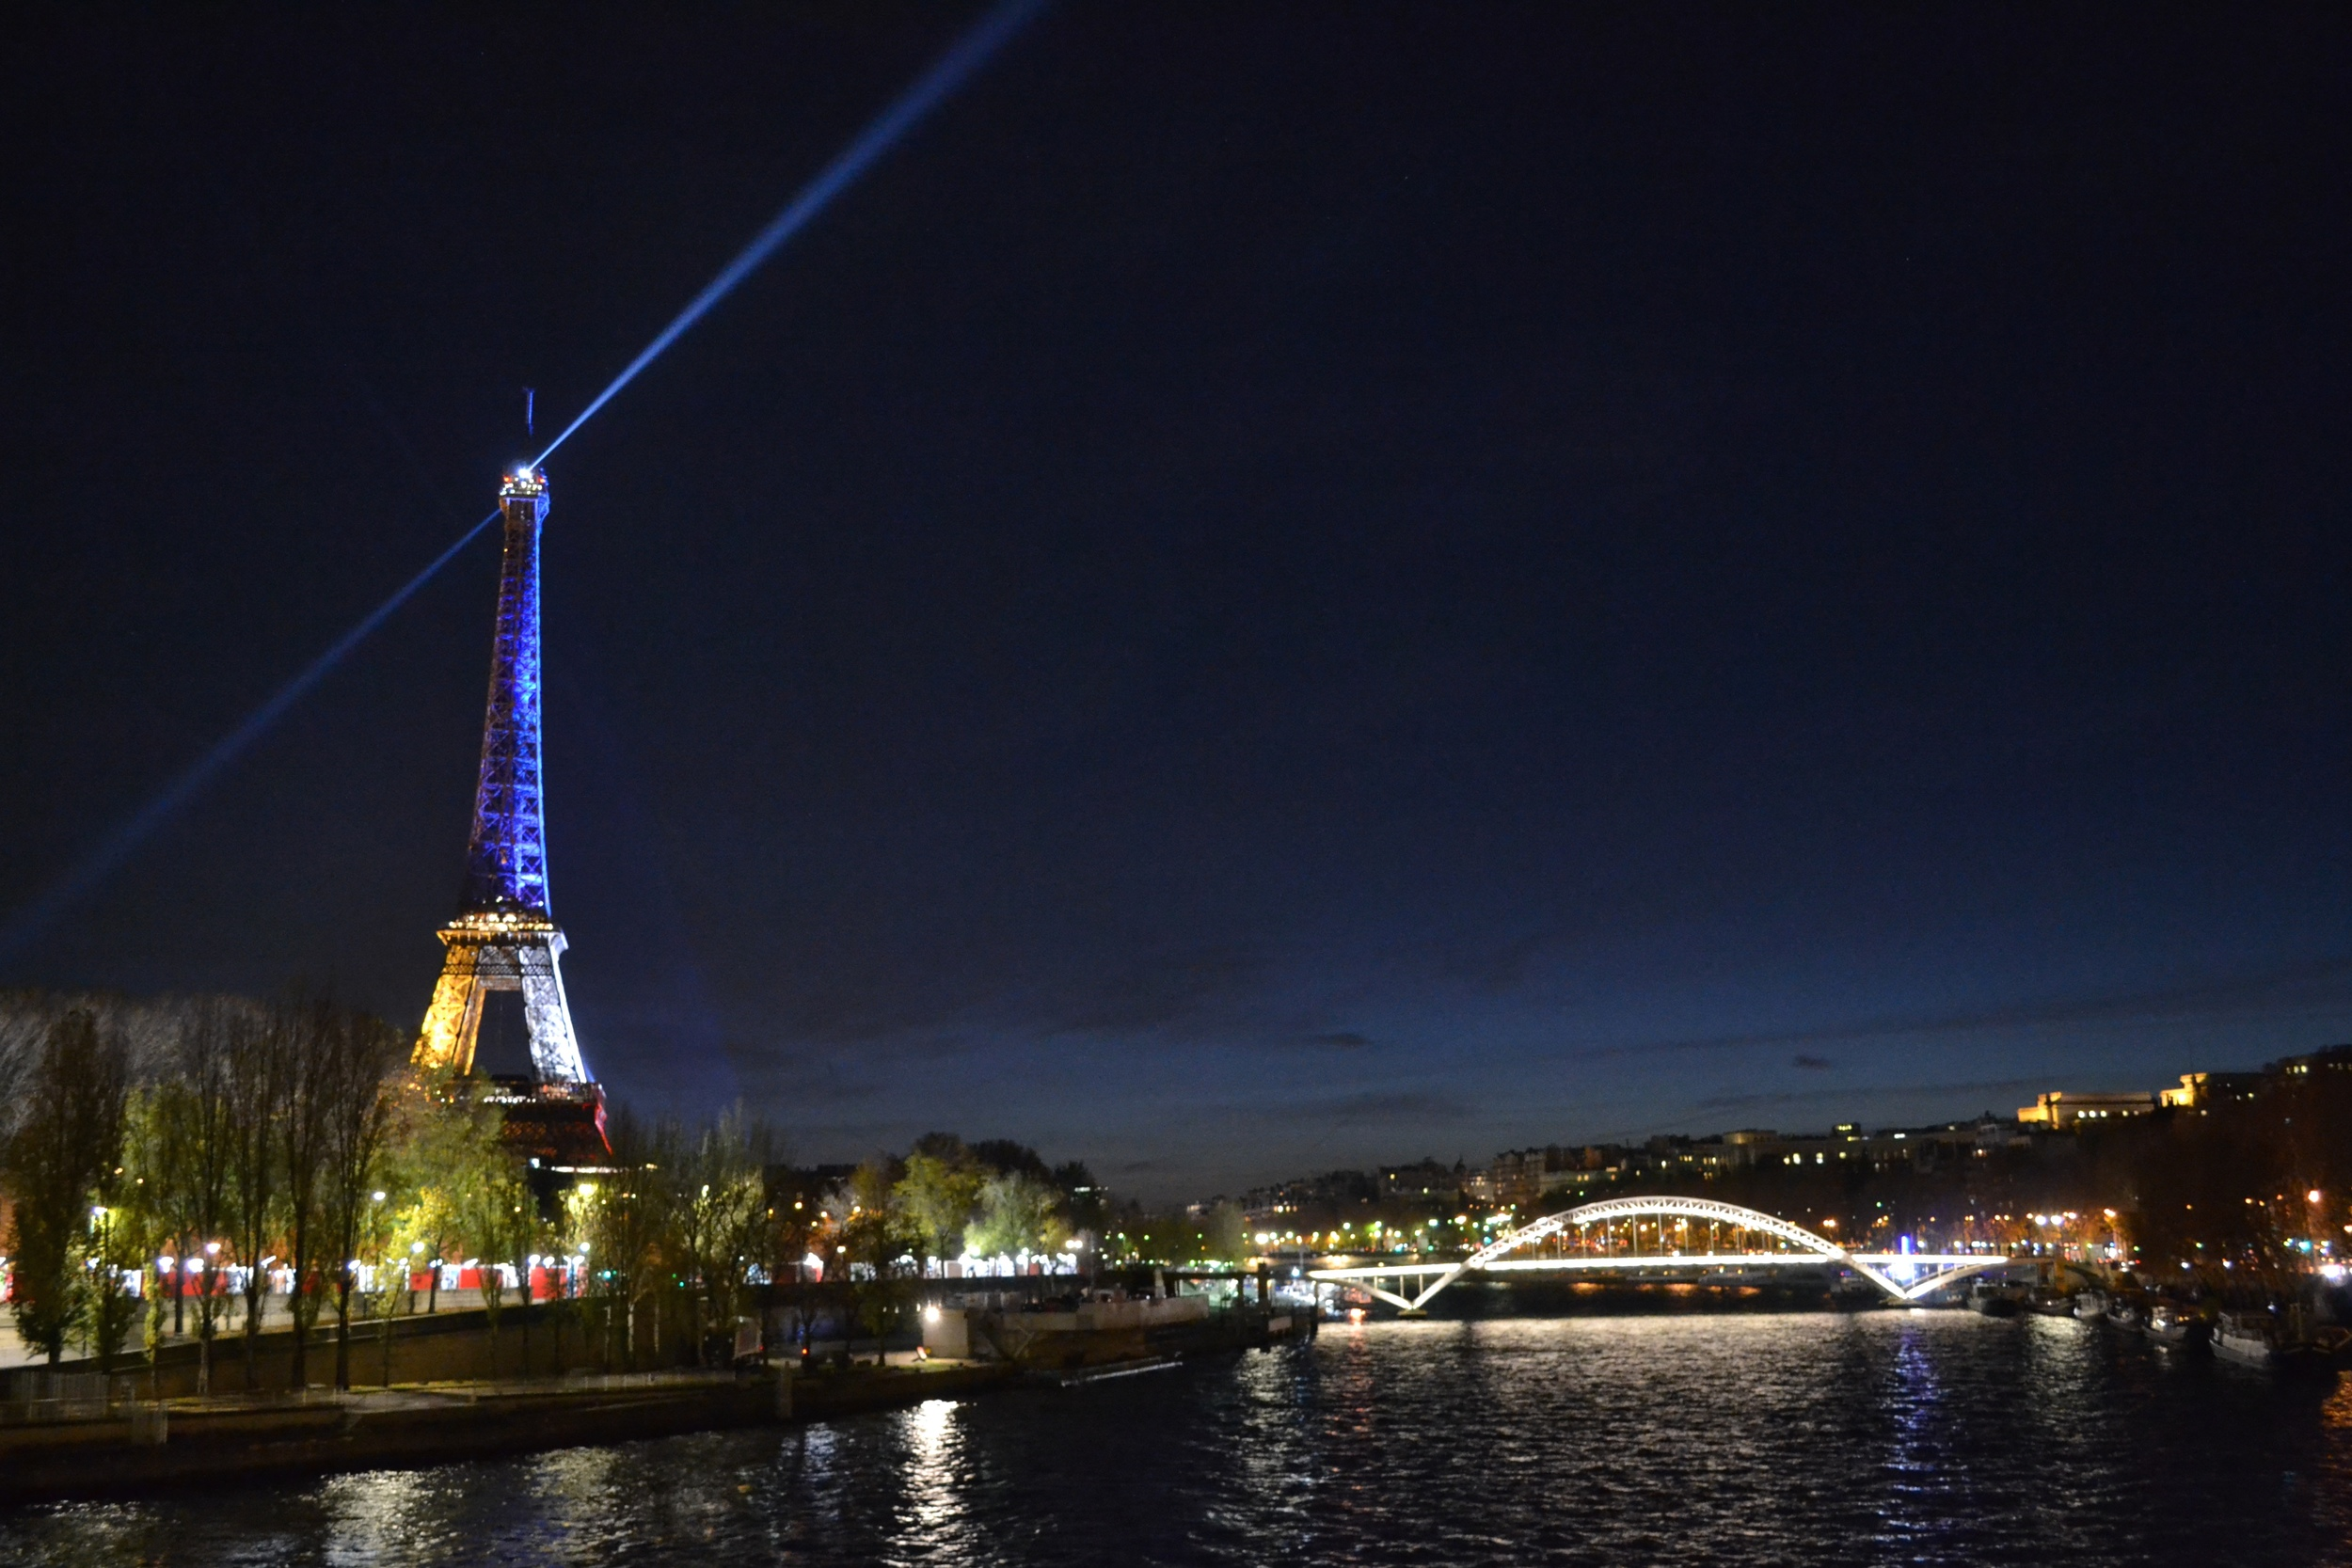 The Eiffel Tower - all decked out.